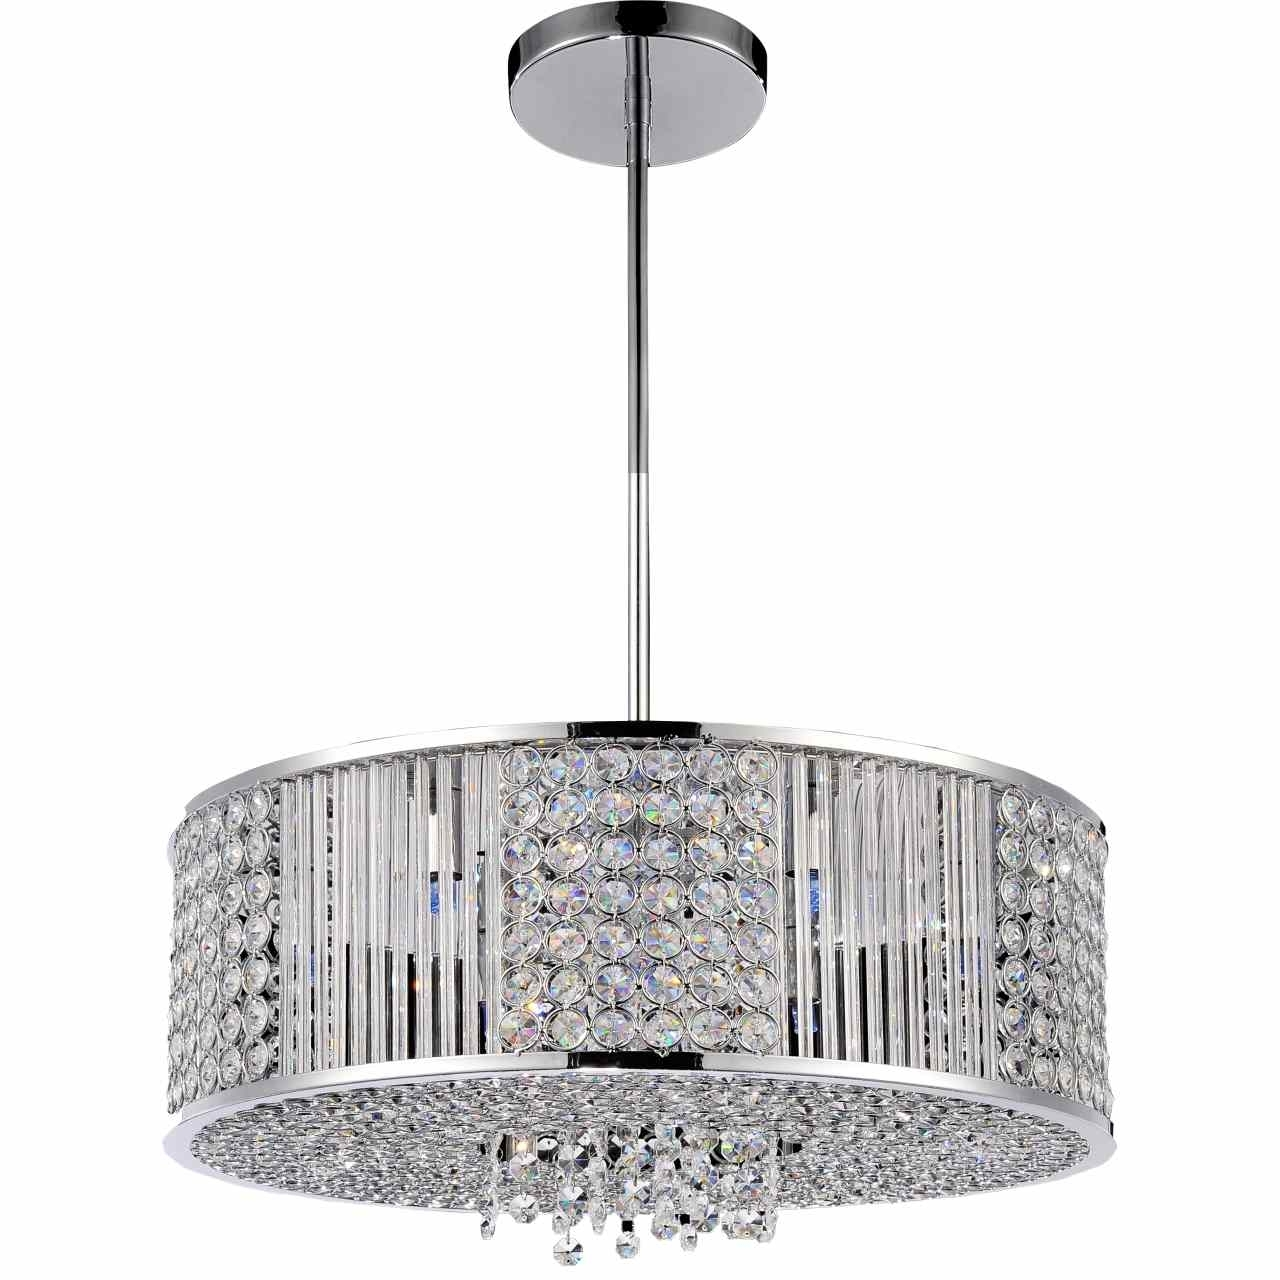 Newest Brizzo Lighting Stores (View 15 of 20)